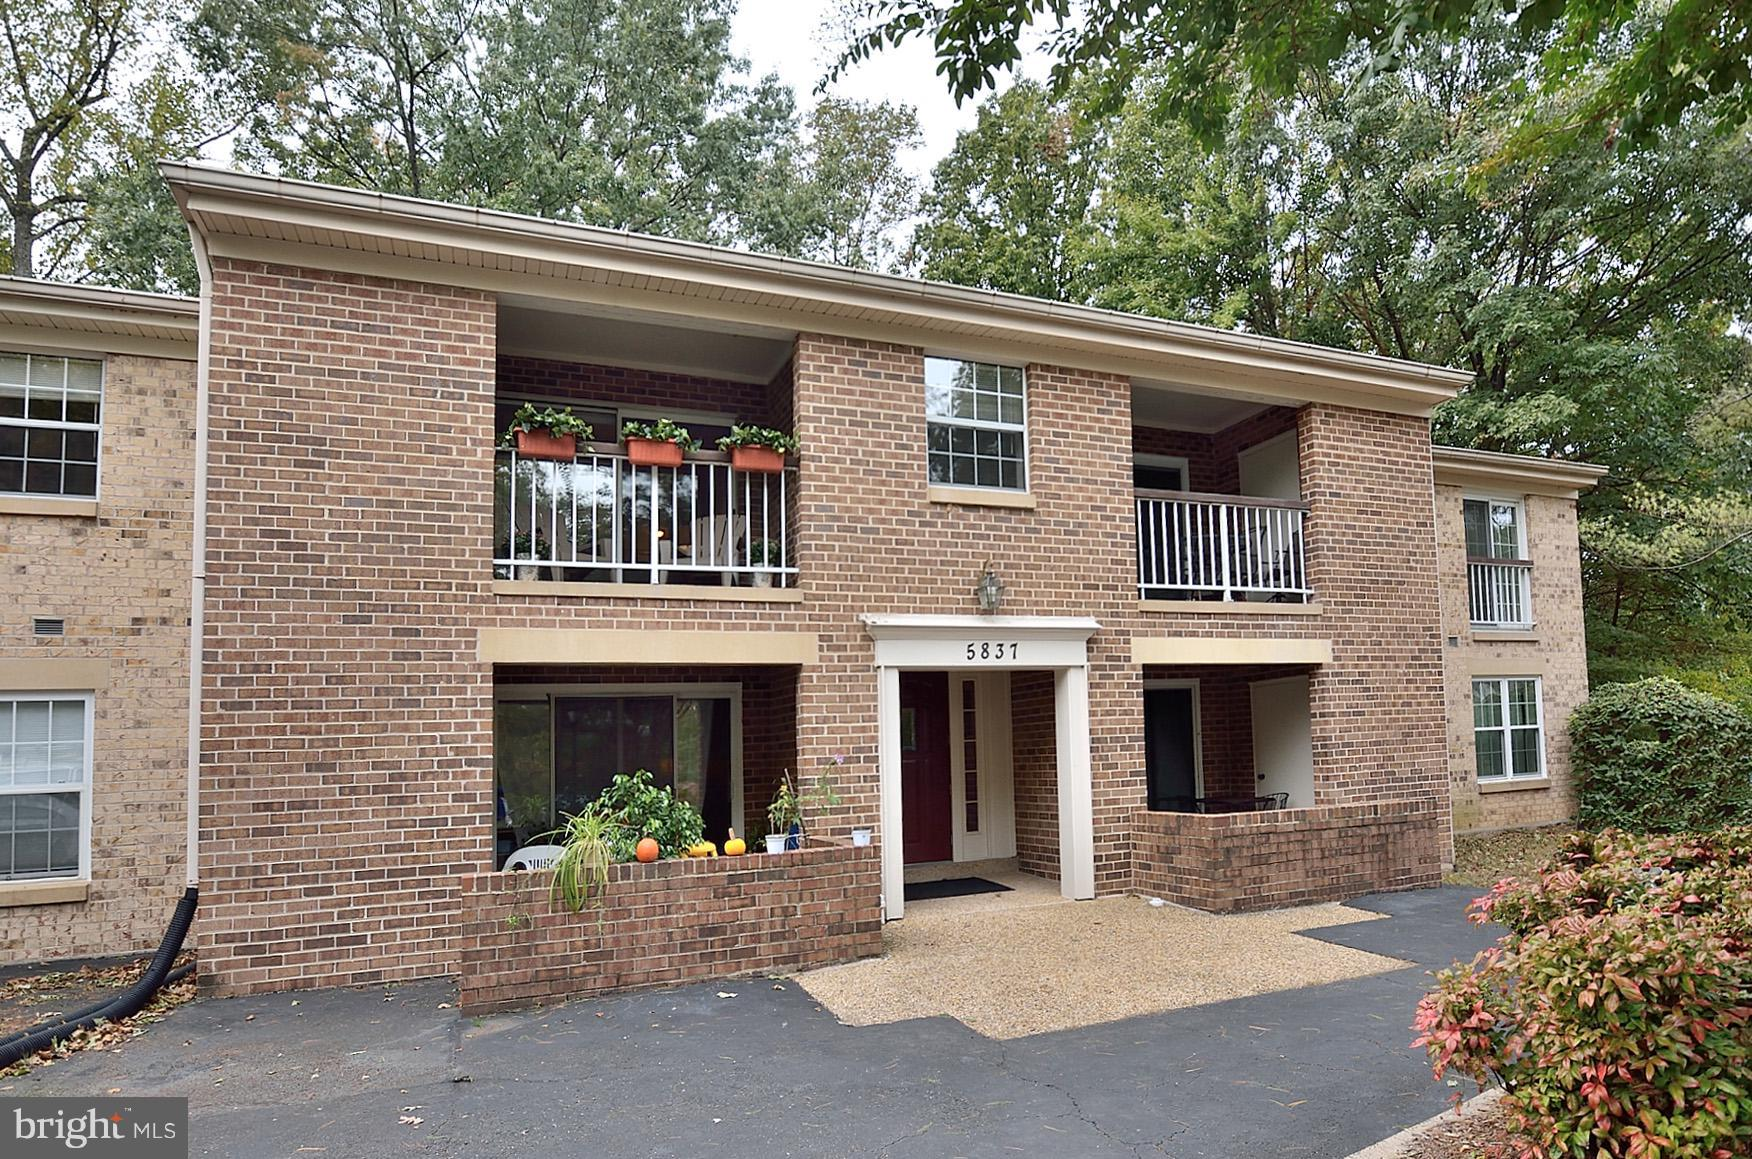 Gorgeous Light-Filled 3 BR/2 BA Condo in Burke Cove w/Over $25K in Upgrades Incl: HVAC with AIR Scrubber; Hot Water Heater, Beautifully Renovated Modern Bathroom w/Ceramic Title; Freshly Painted; & MORE!  Top Floor w/Open Floor Plan & Front Door Parking Spot! HUGE Storage Rm. Master Suite w/Lots of Closets & Private Bath. Located in Burke Conservatory & Close to Shopping and VRE.  OH 12/9  1-4pm